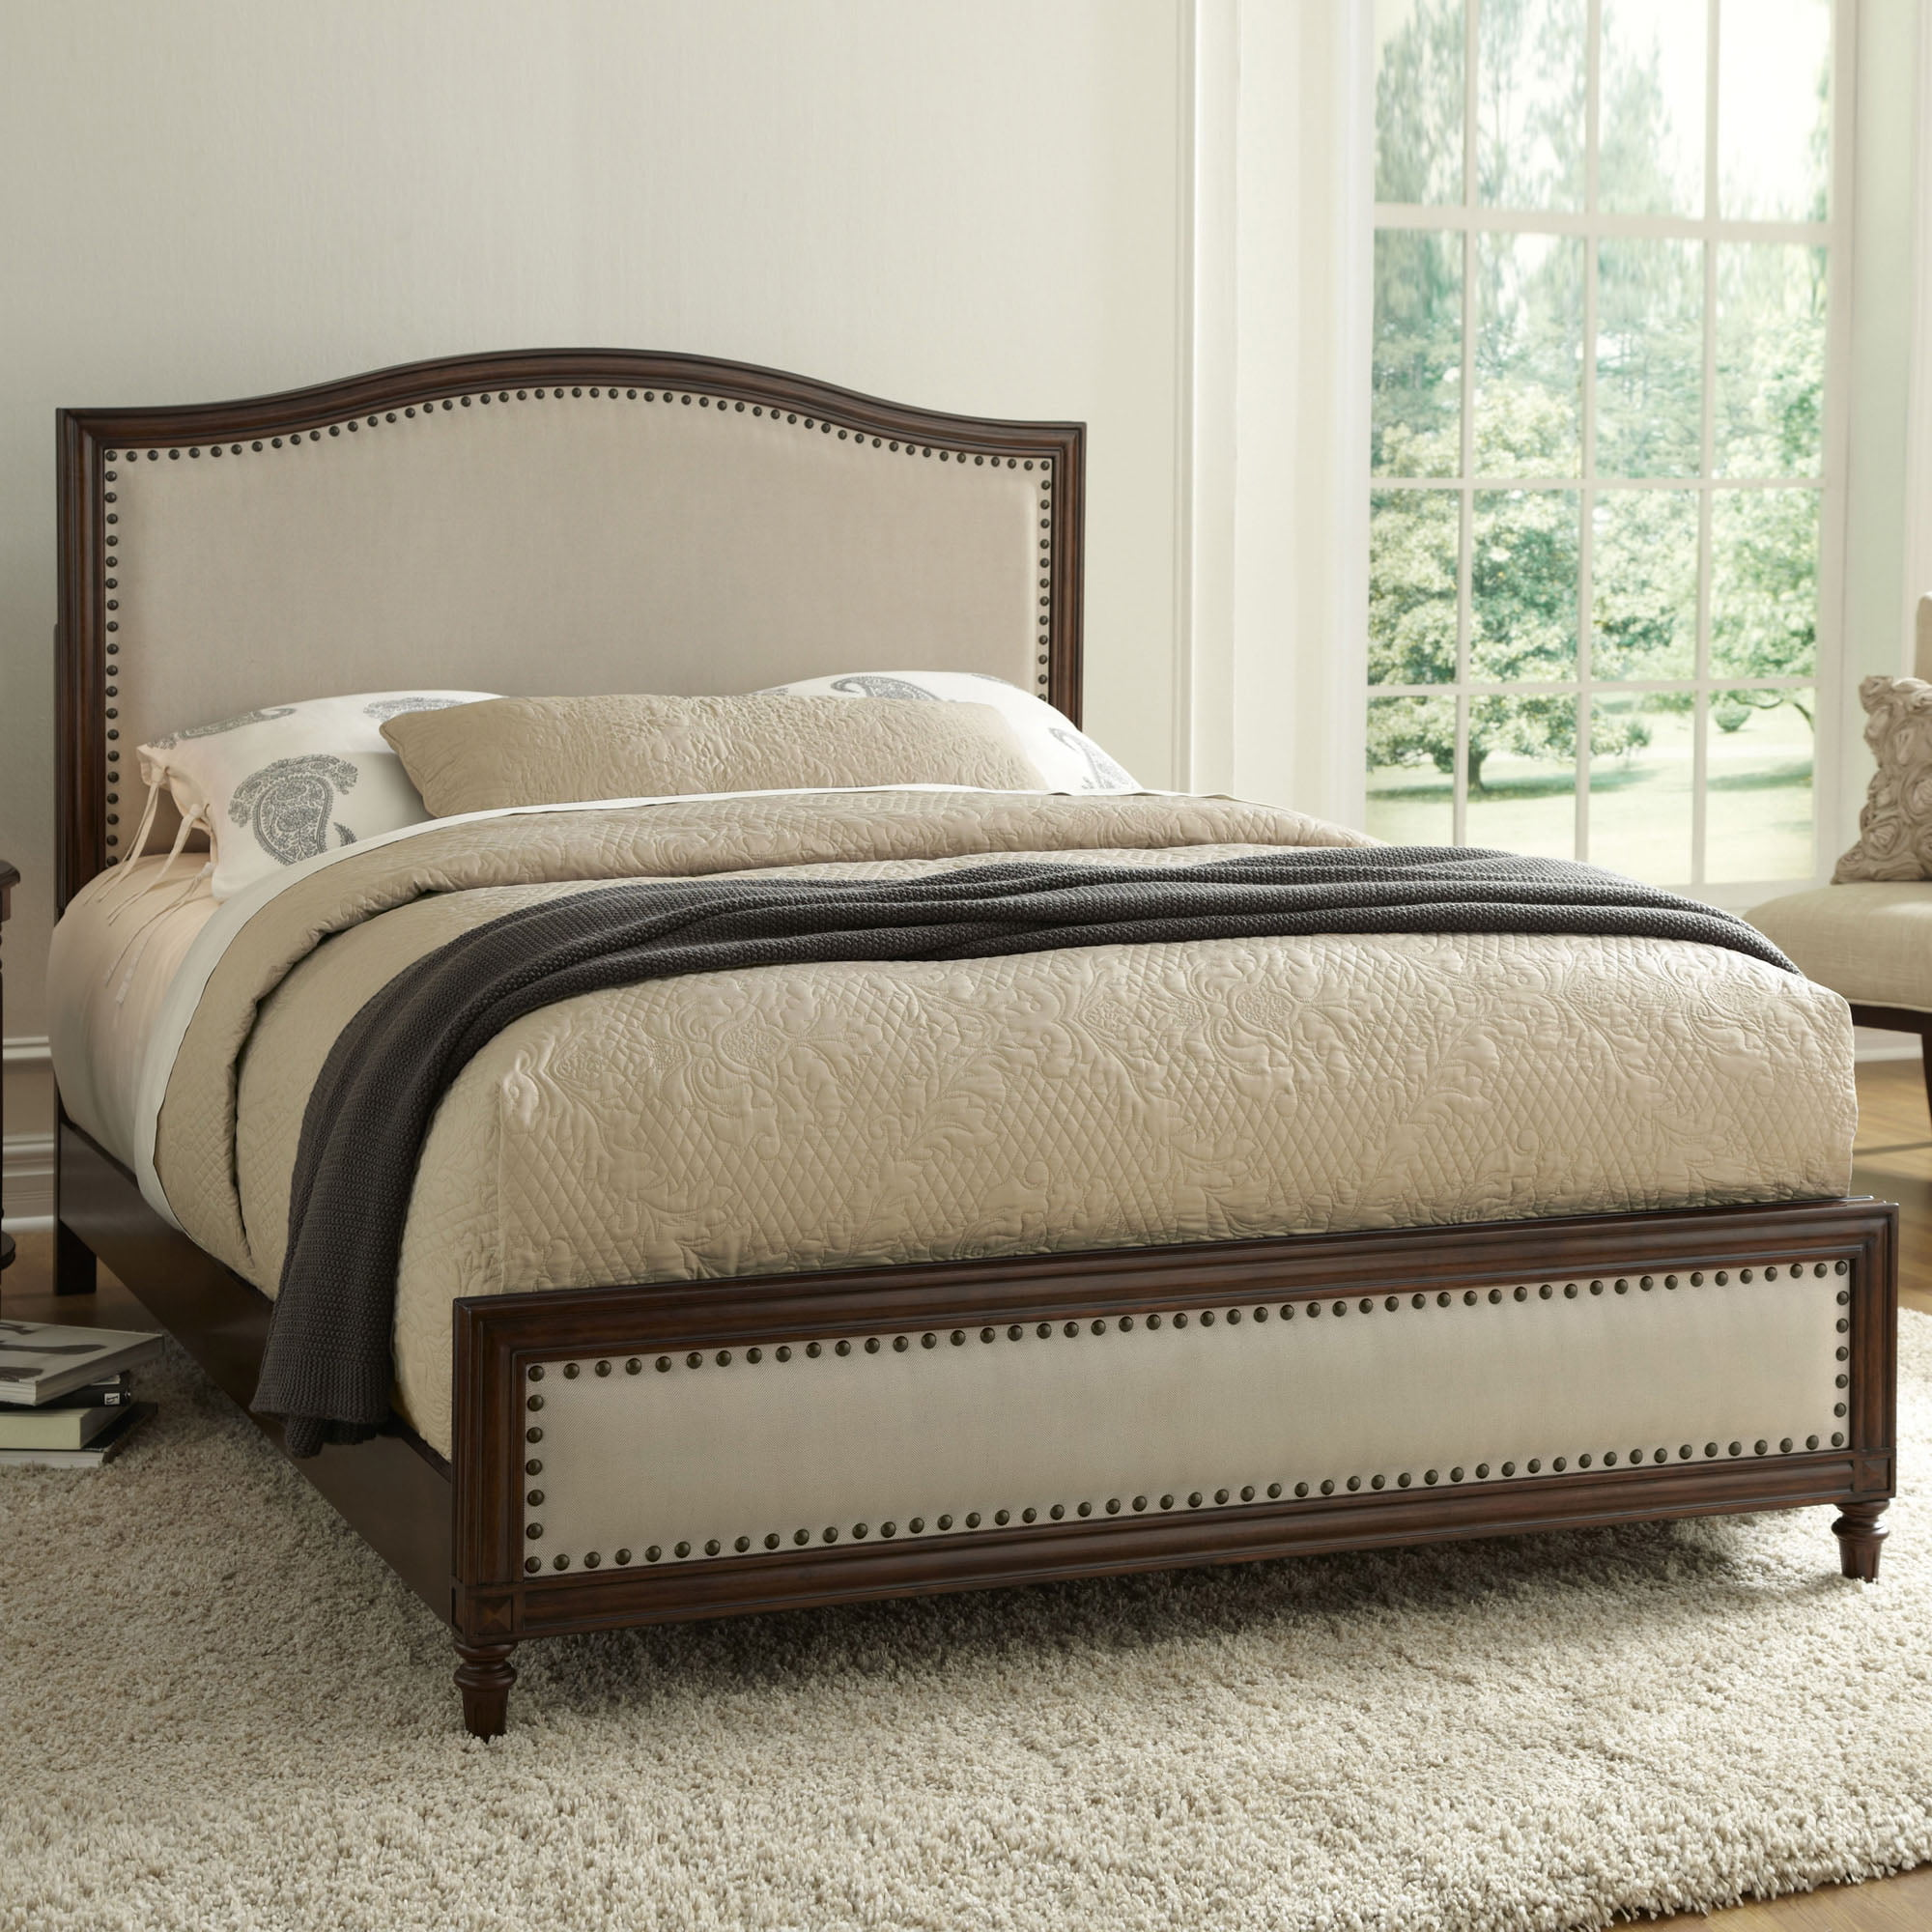 Fashion Bed Group Grandover Complete Platform Bed, Cream Upholstery and Espresso Finish, Multiple Sizes by Fashion Bed Group